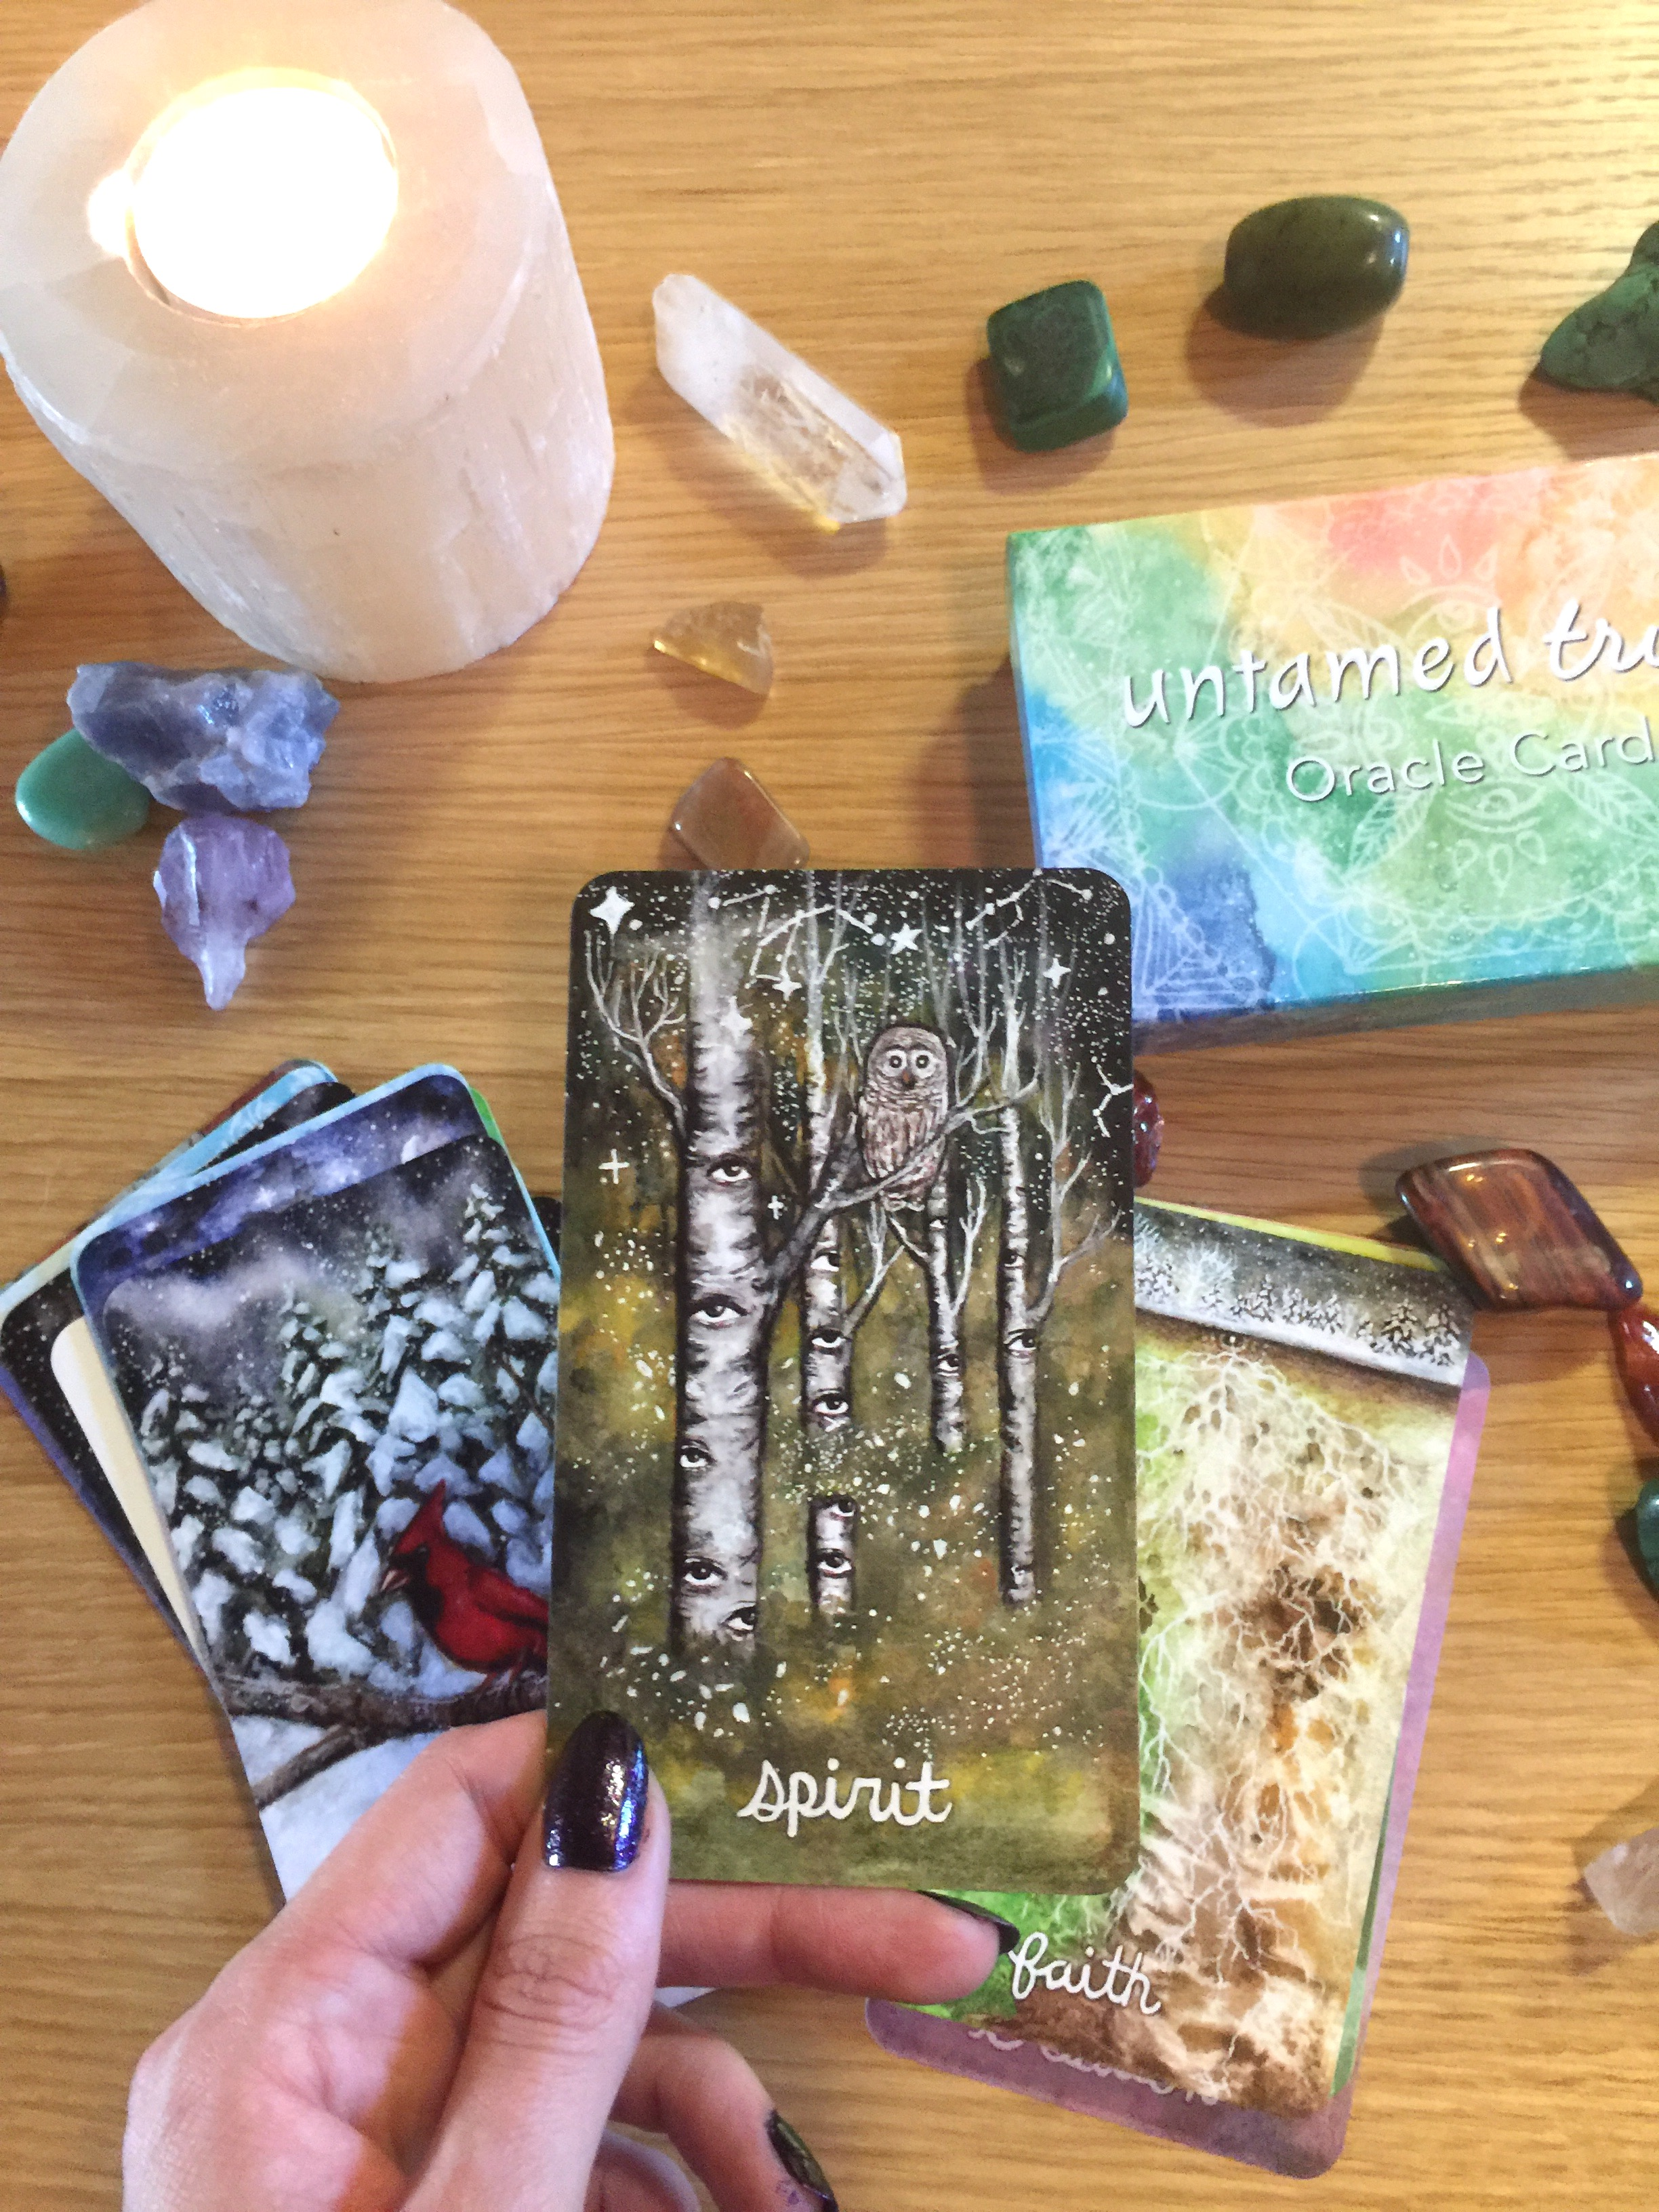 Untamed Truth Oracle